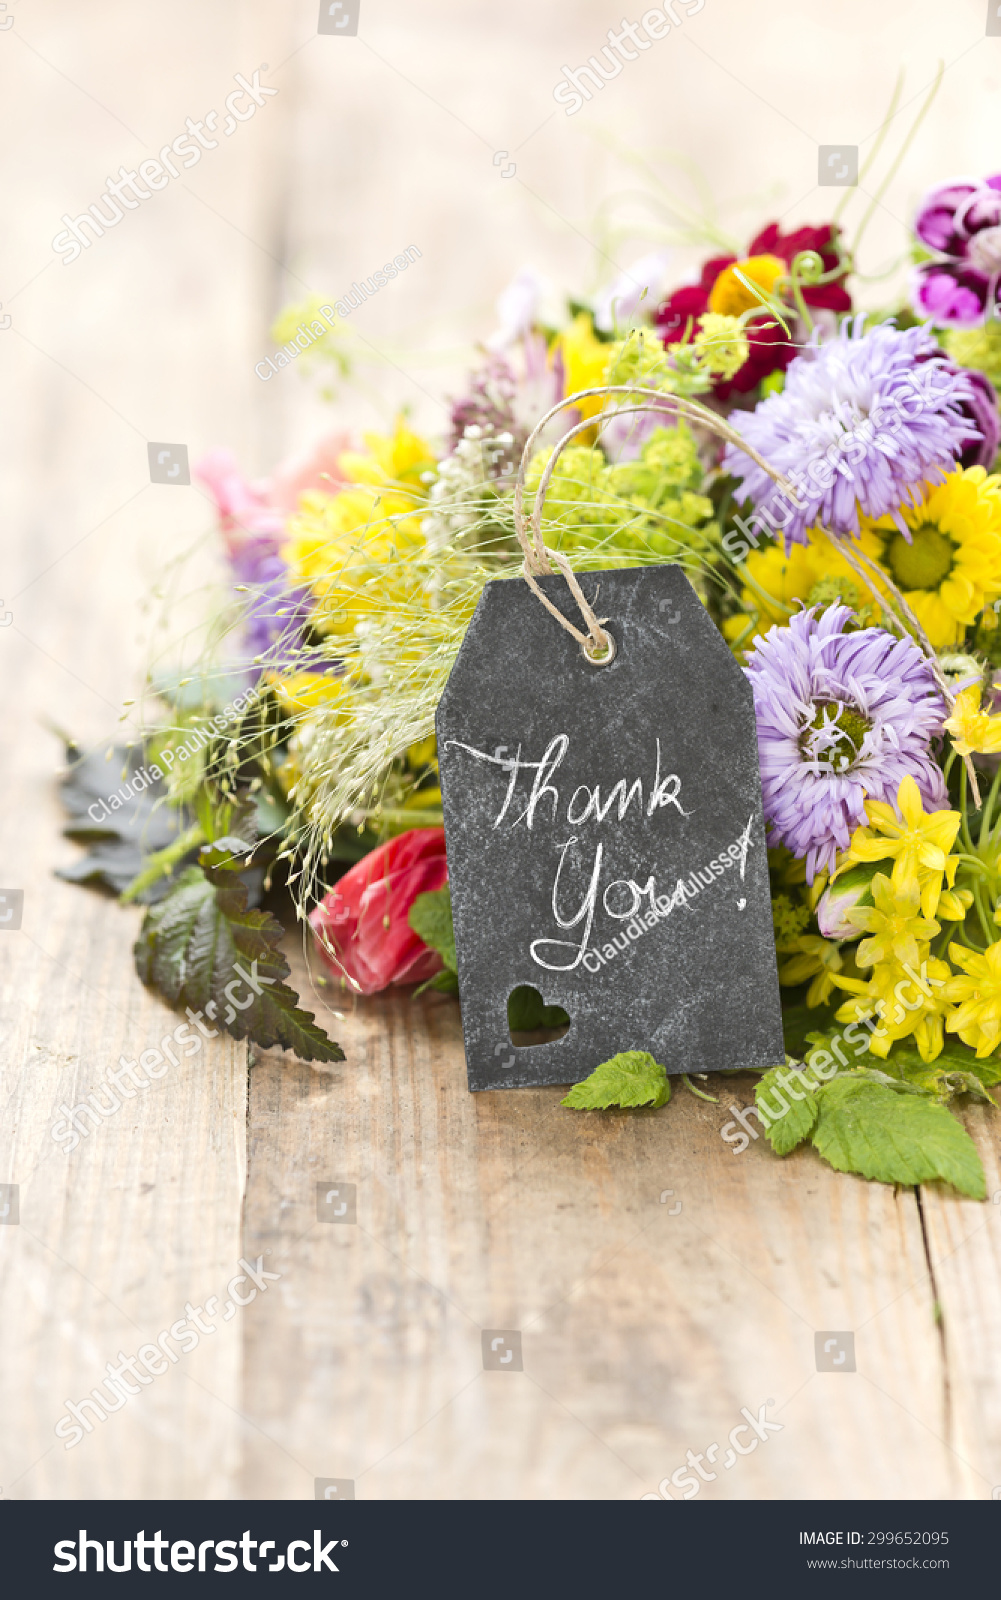 Bouquet Flowers Tag Saying Thank You Stock Photo (Royalty Free ...